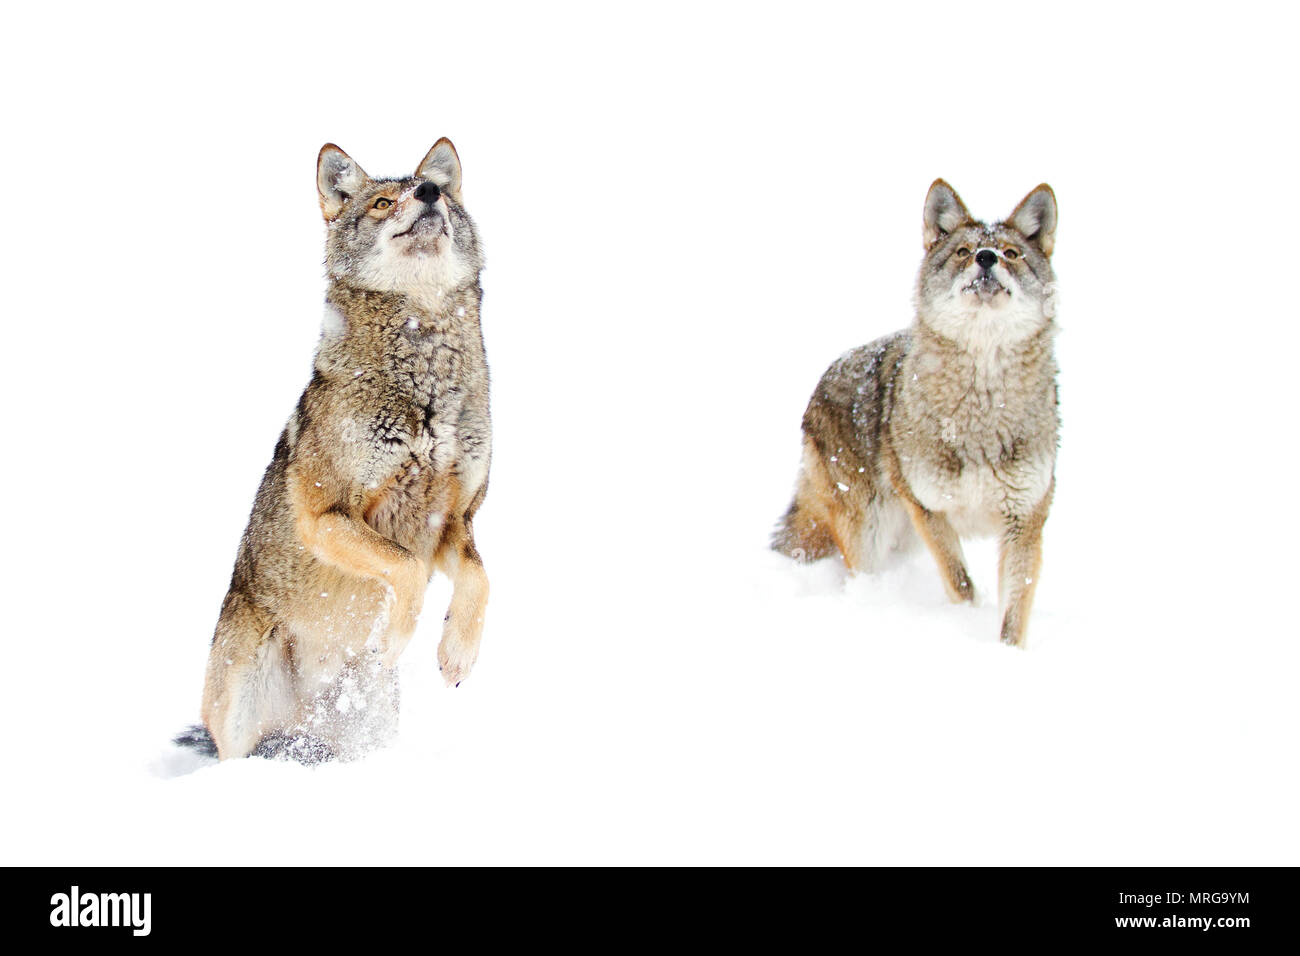 Two coyotes (Canis latrans) isolated against a white background standing in the winter snow in Canada - Stock Image